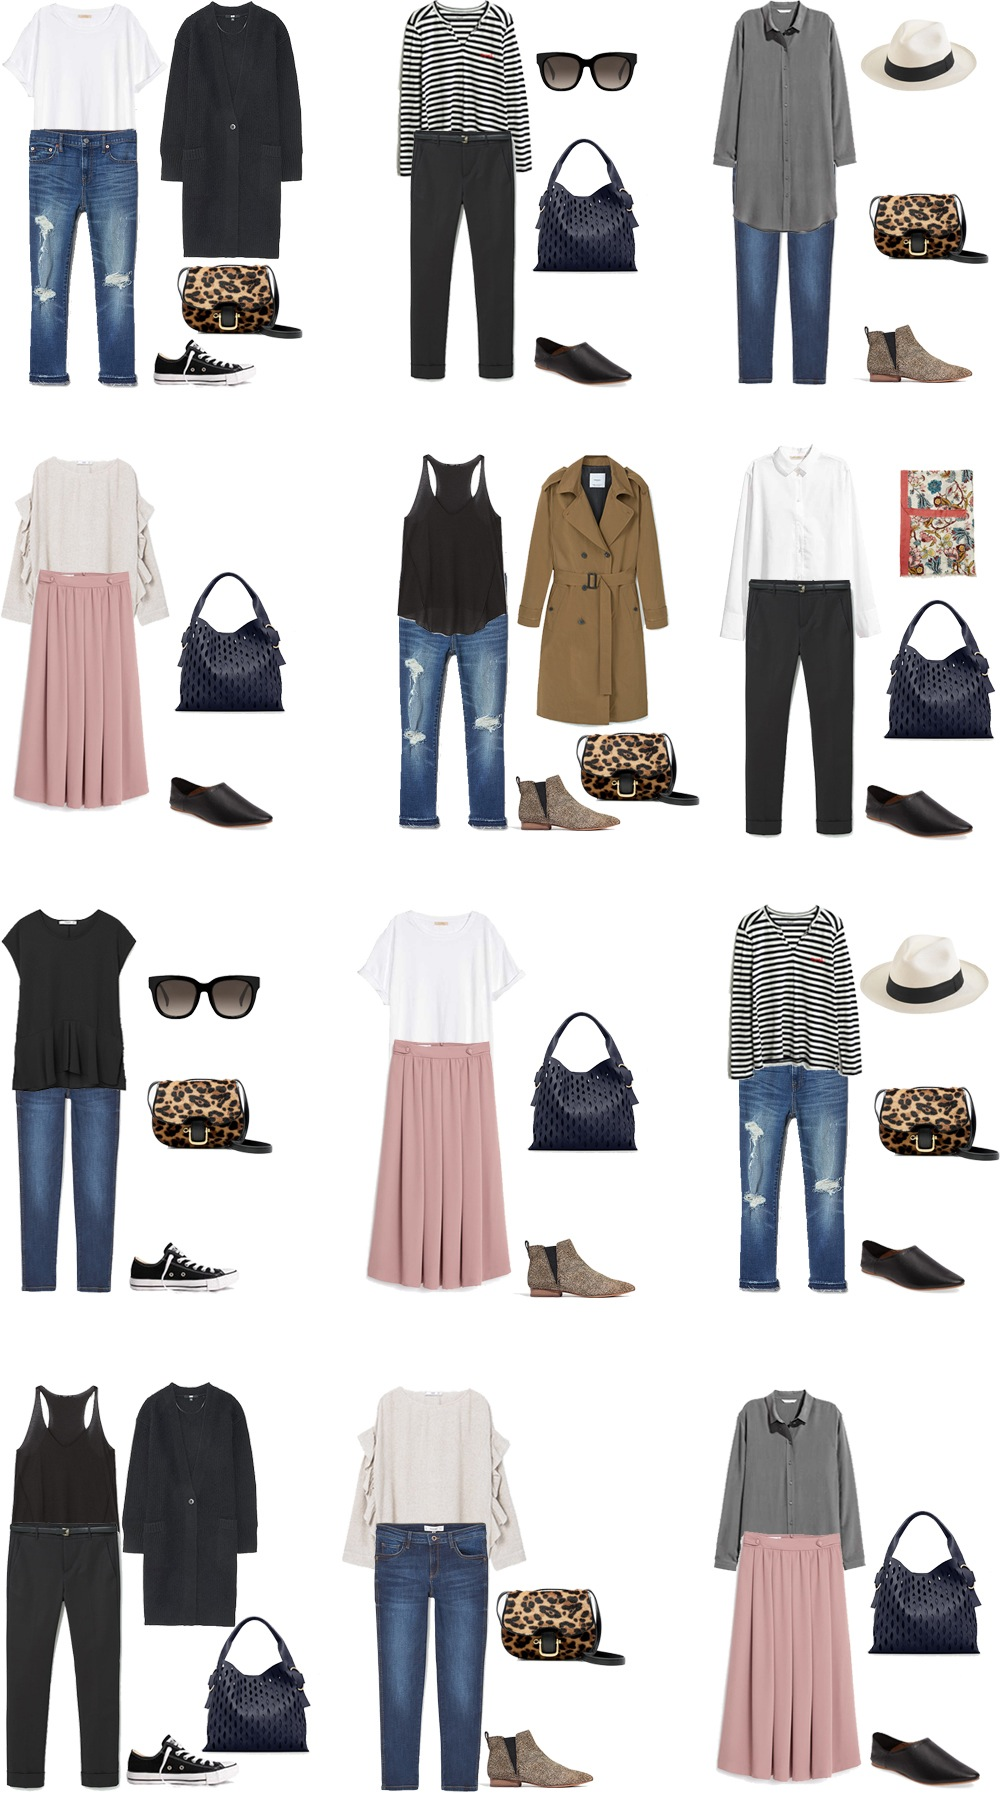 What To Wear In Central Europe Outfit Options 1 10 #packinglight  #travellight #